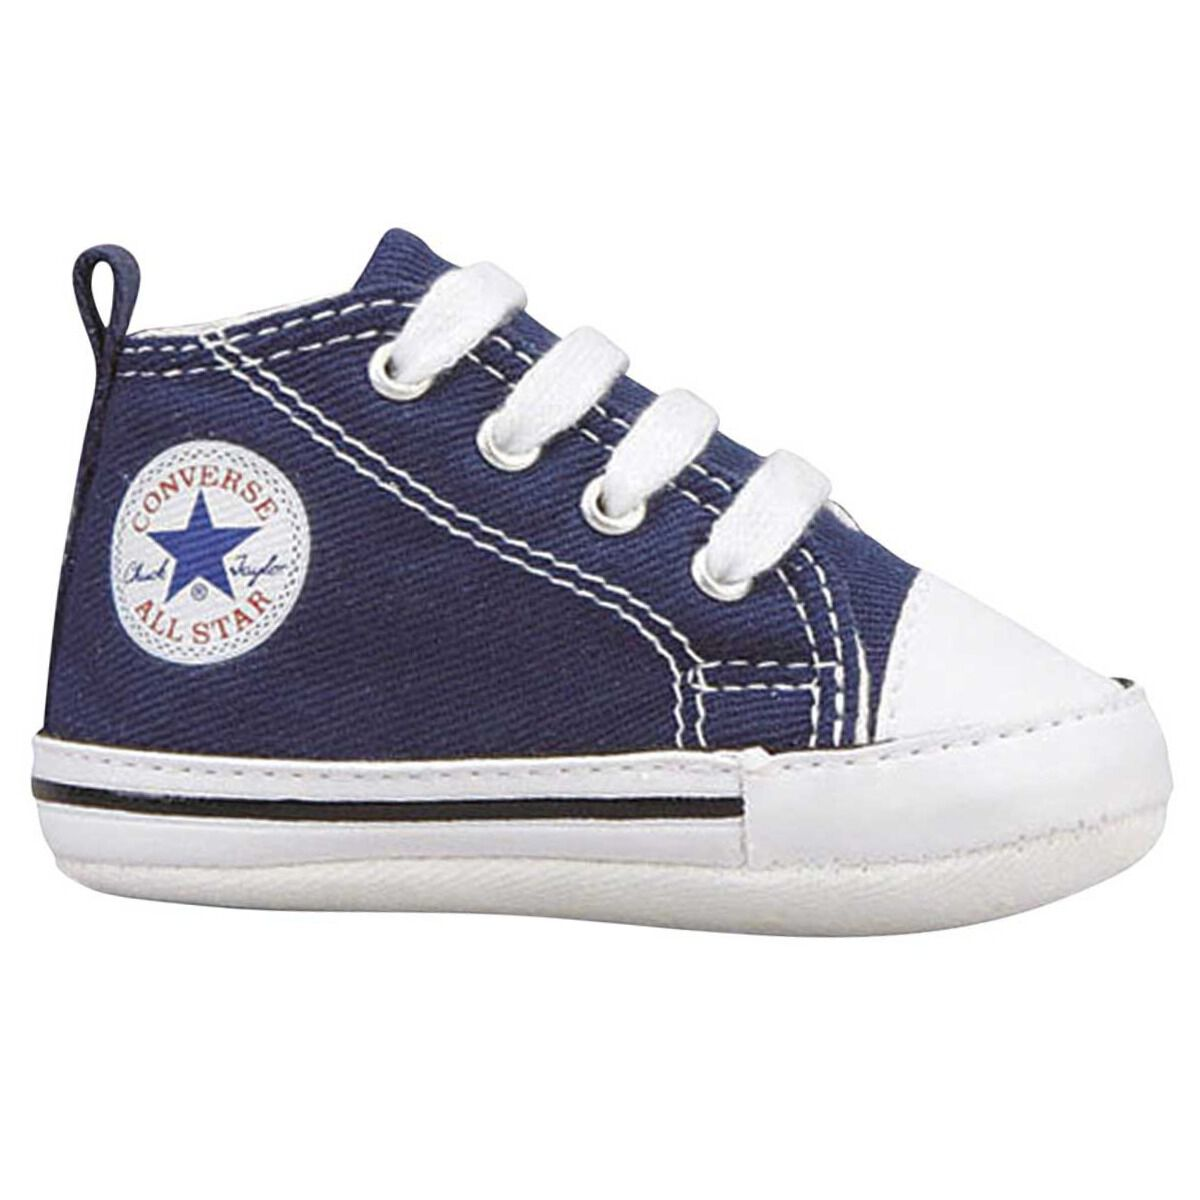 Converse Chuck Taylor First Star Infant Shoes Navy US 1